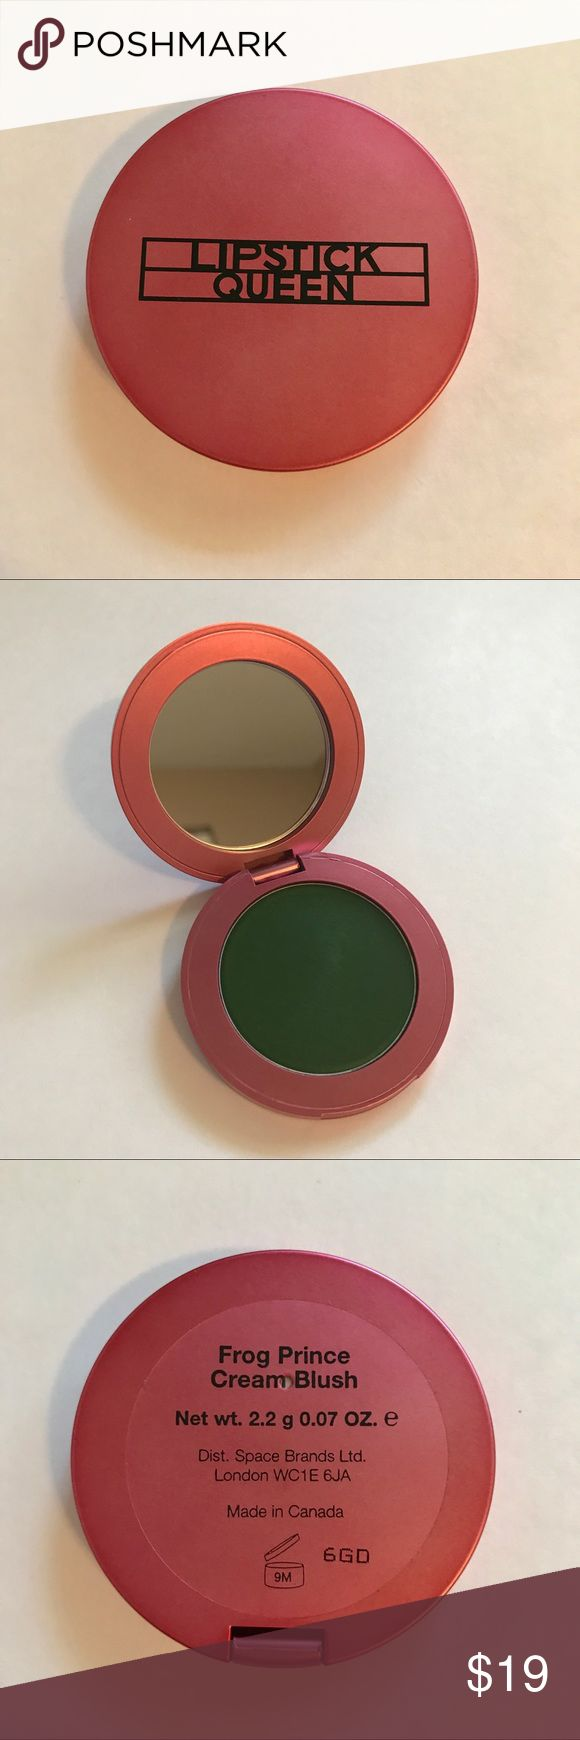 🐸 Lipstick Queen Frog Prince Cream Blush 🐸 Brand new product. NWOT. Cream Blush from the Lipstick Queen Frog Prince collection. Looks green but transforms into a beautiful pink. 🐸 Lipstick Queen Makeup Blush